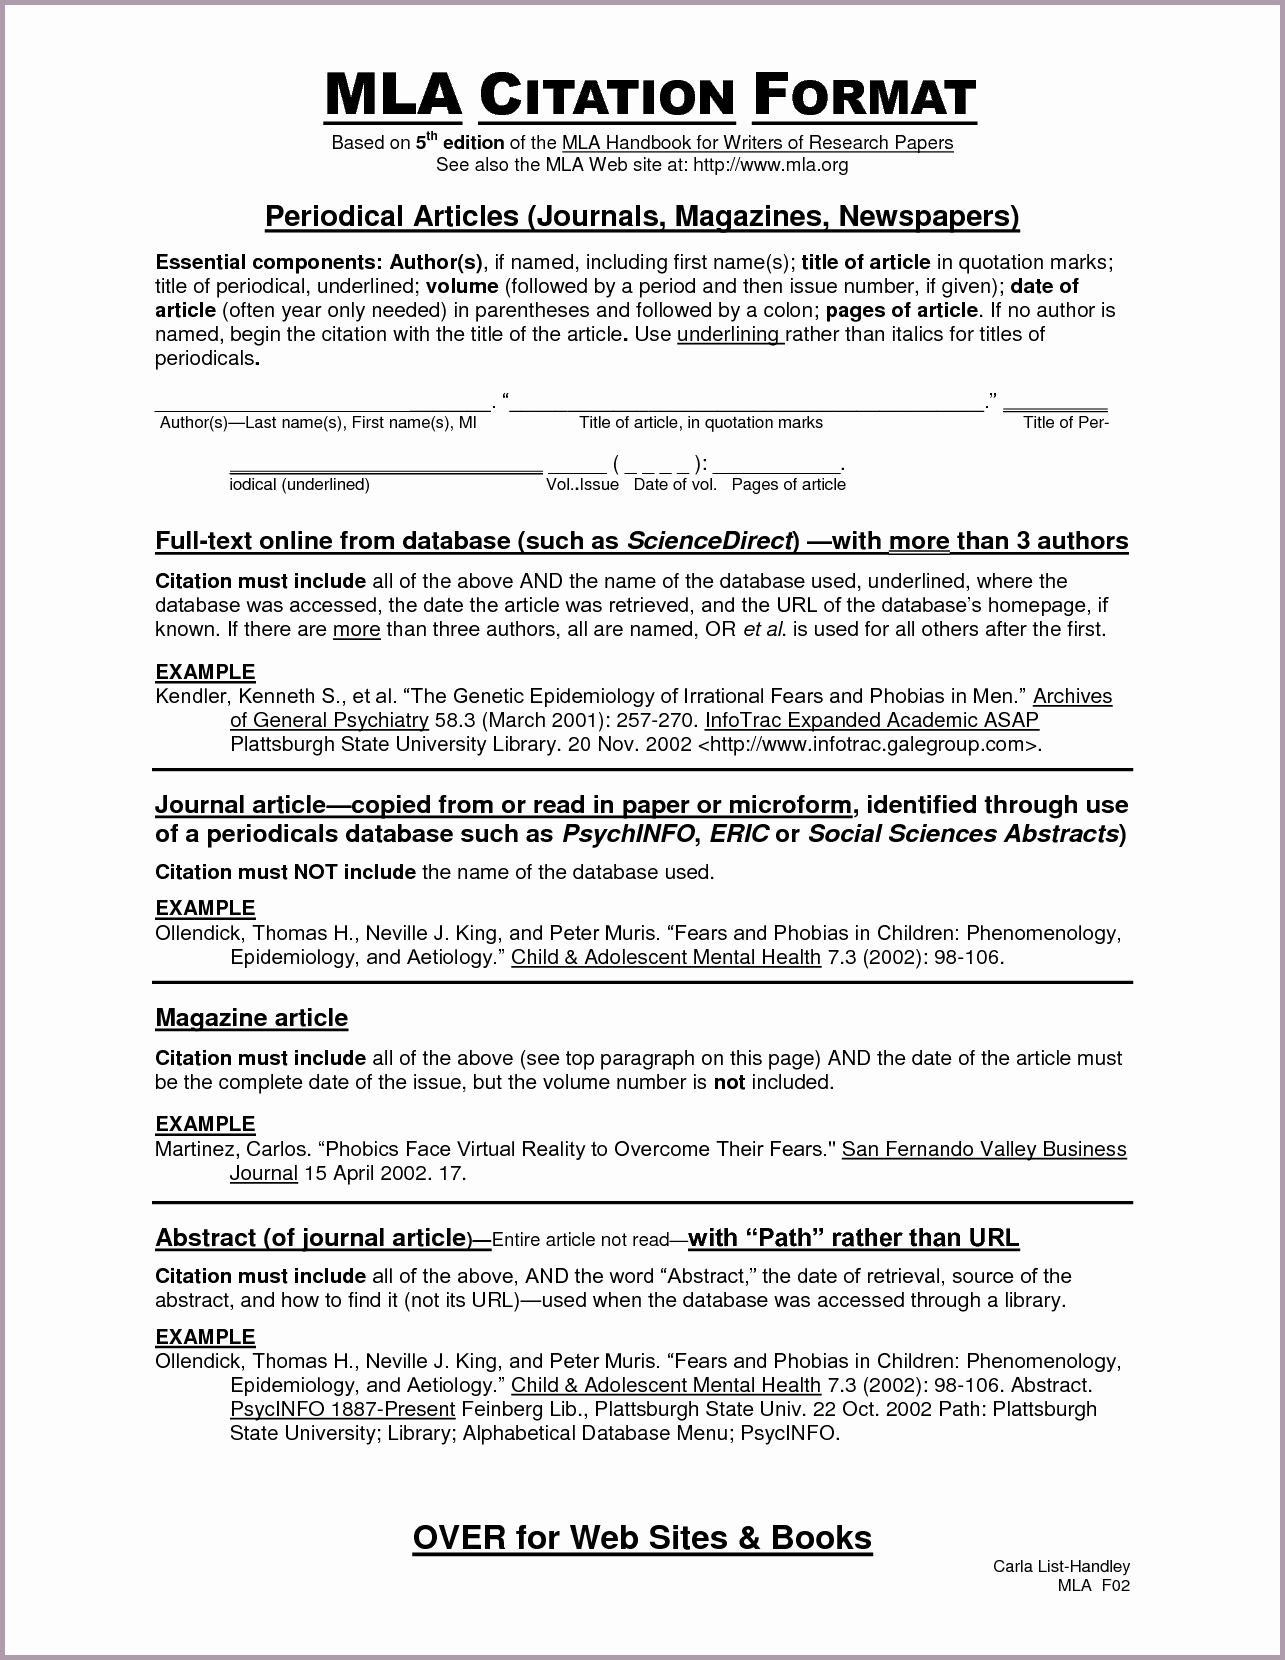 023 How To Cite Source In Research Paper Mla Format Best Of Unbelievable A Full